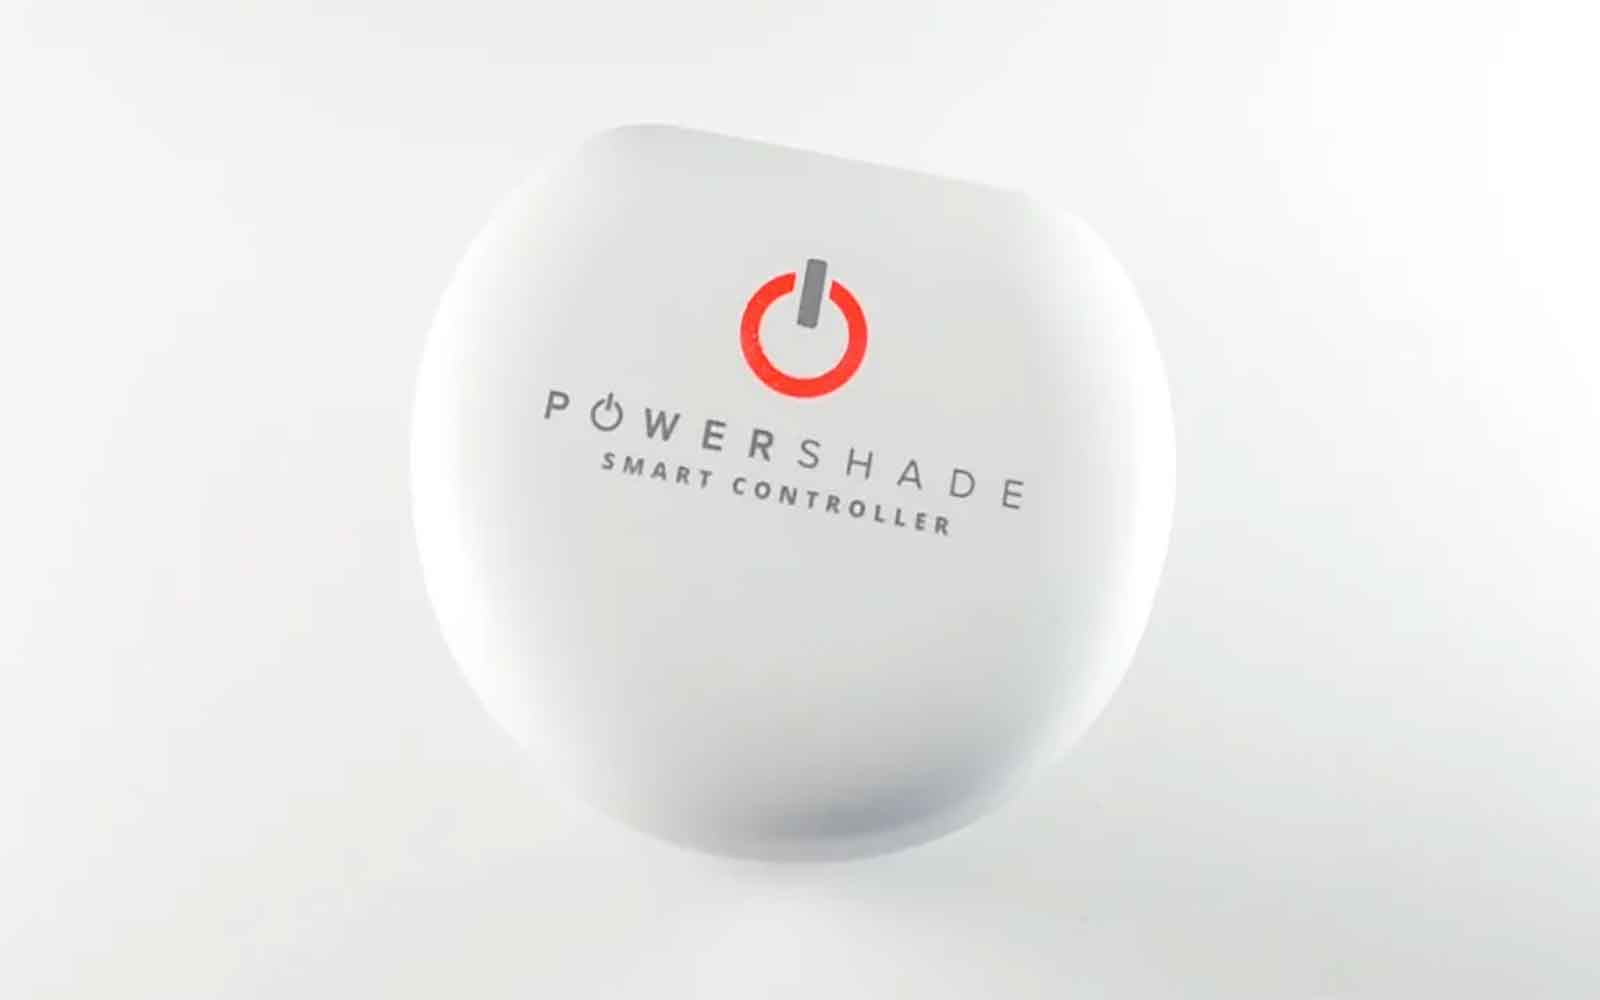 Powershade Motorised Blinds